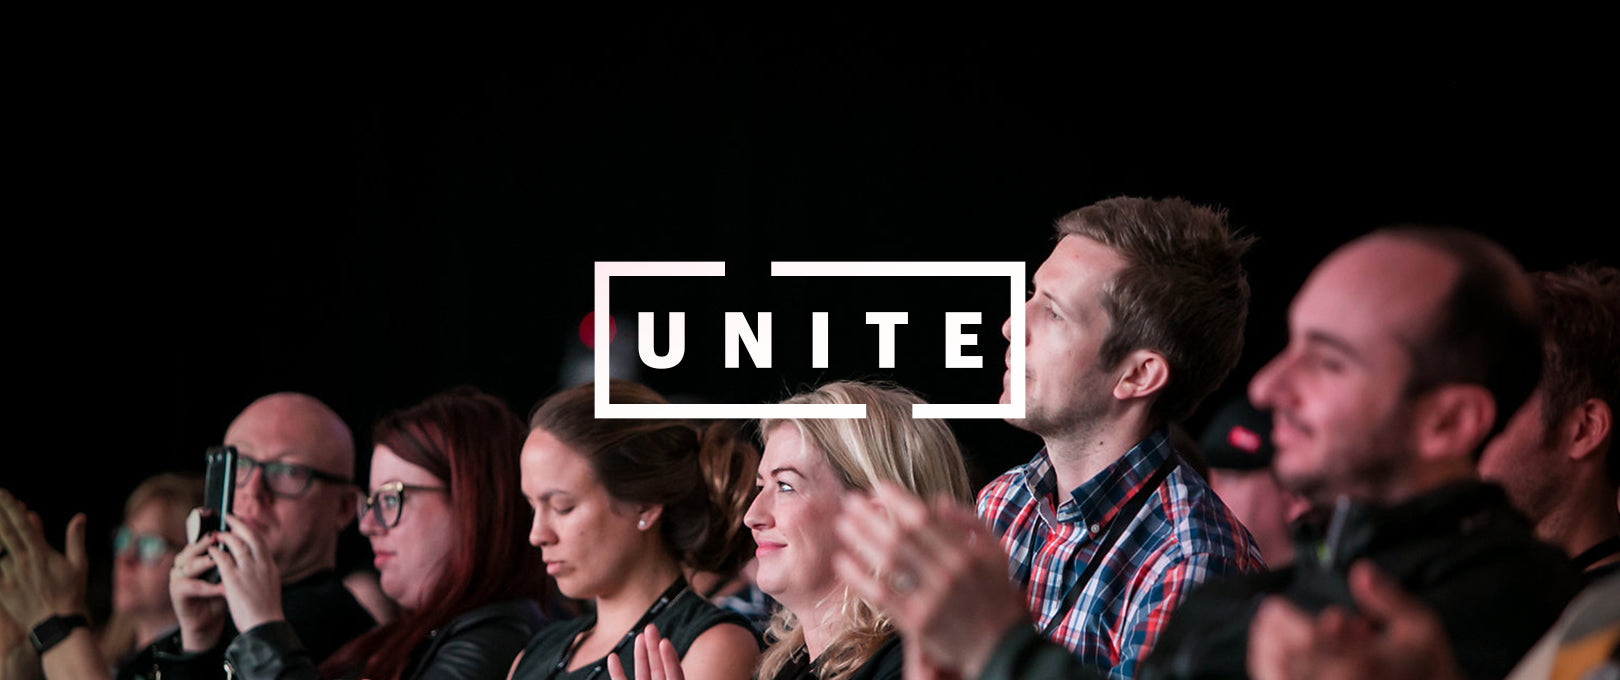 Shopify Unite is a Glimpse at the Future of Commerce